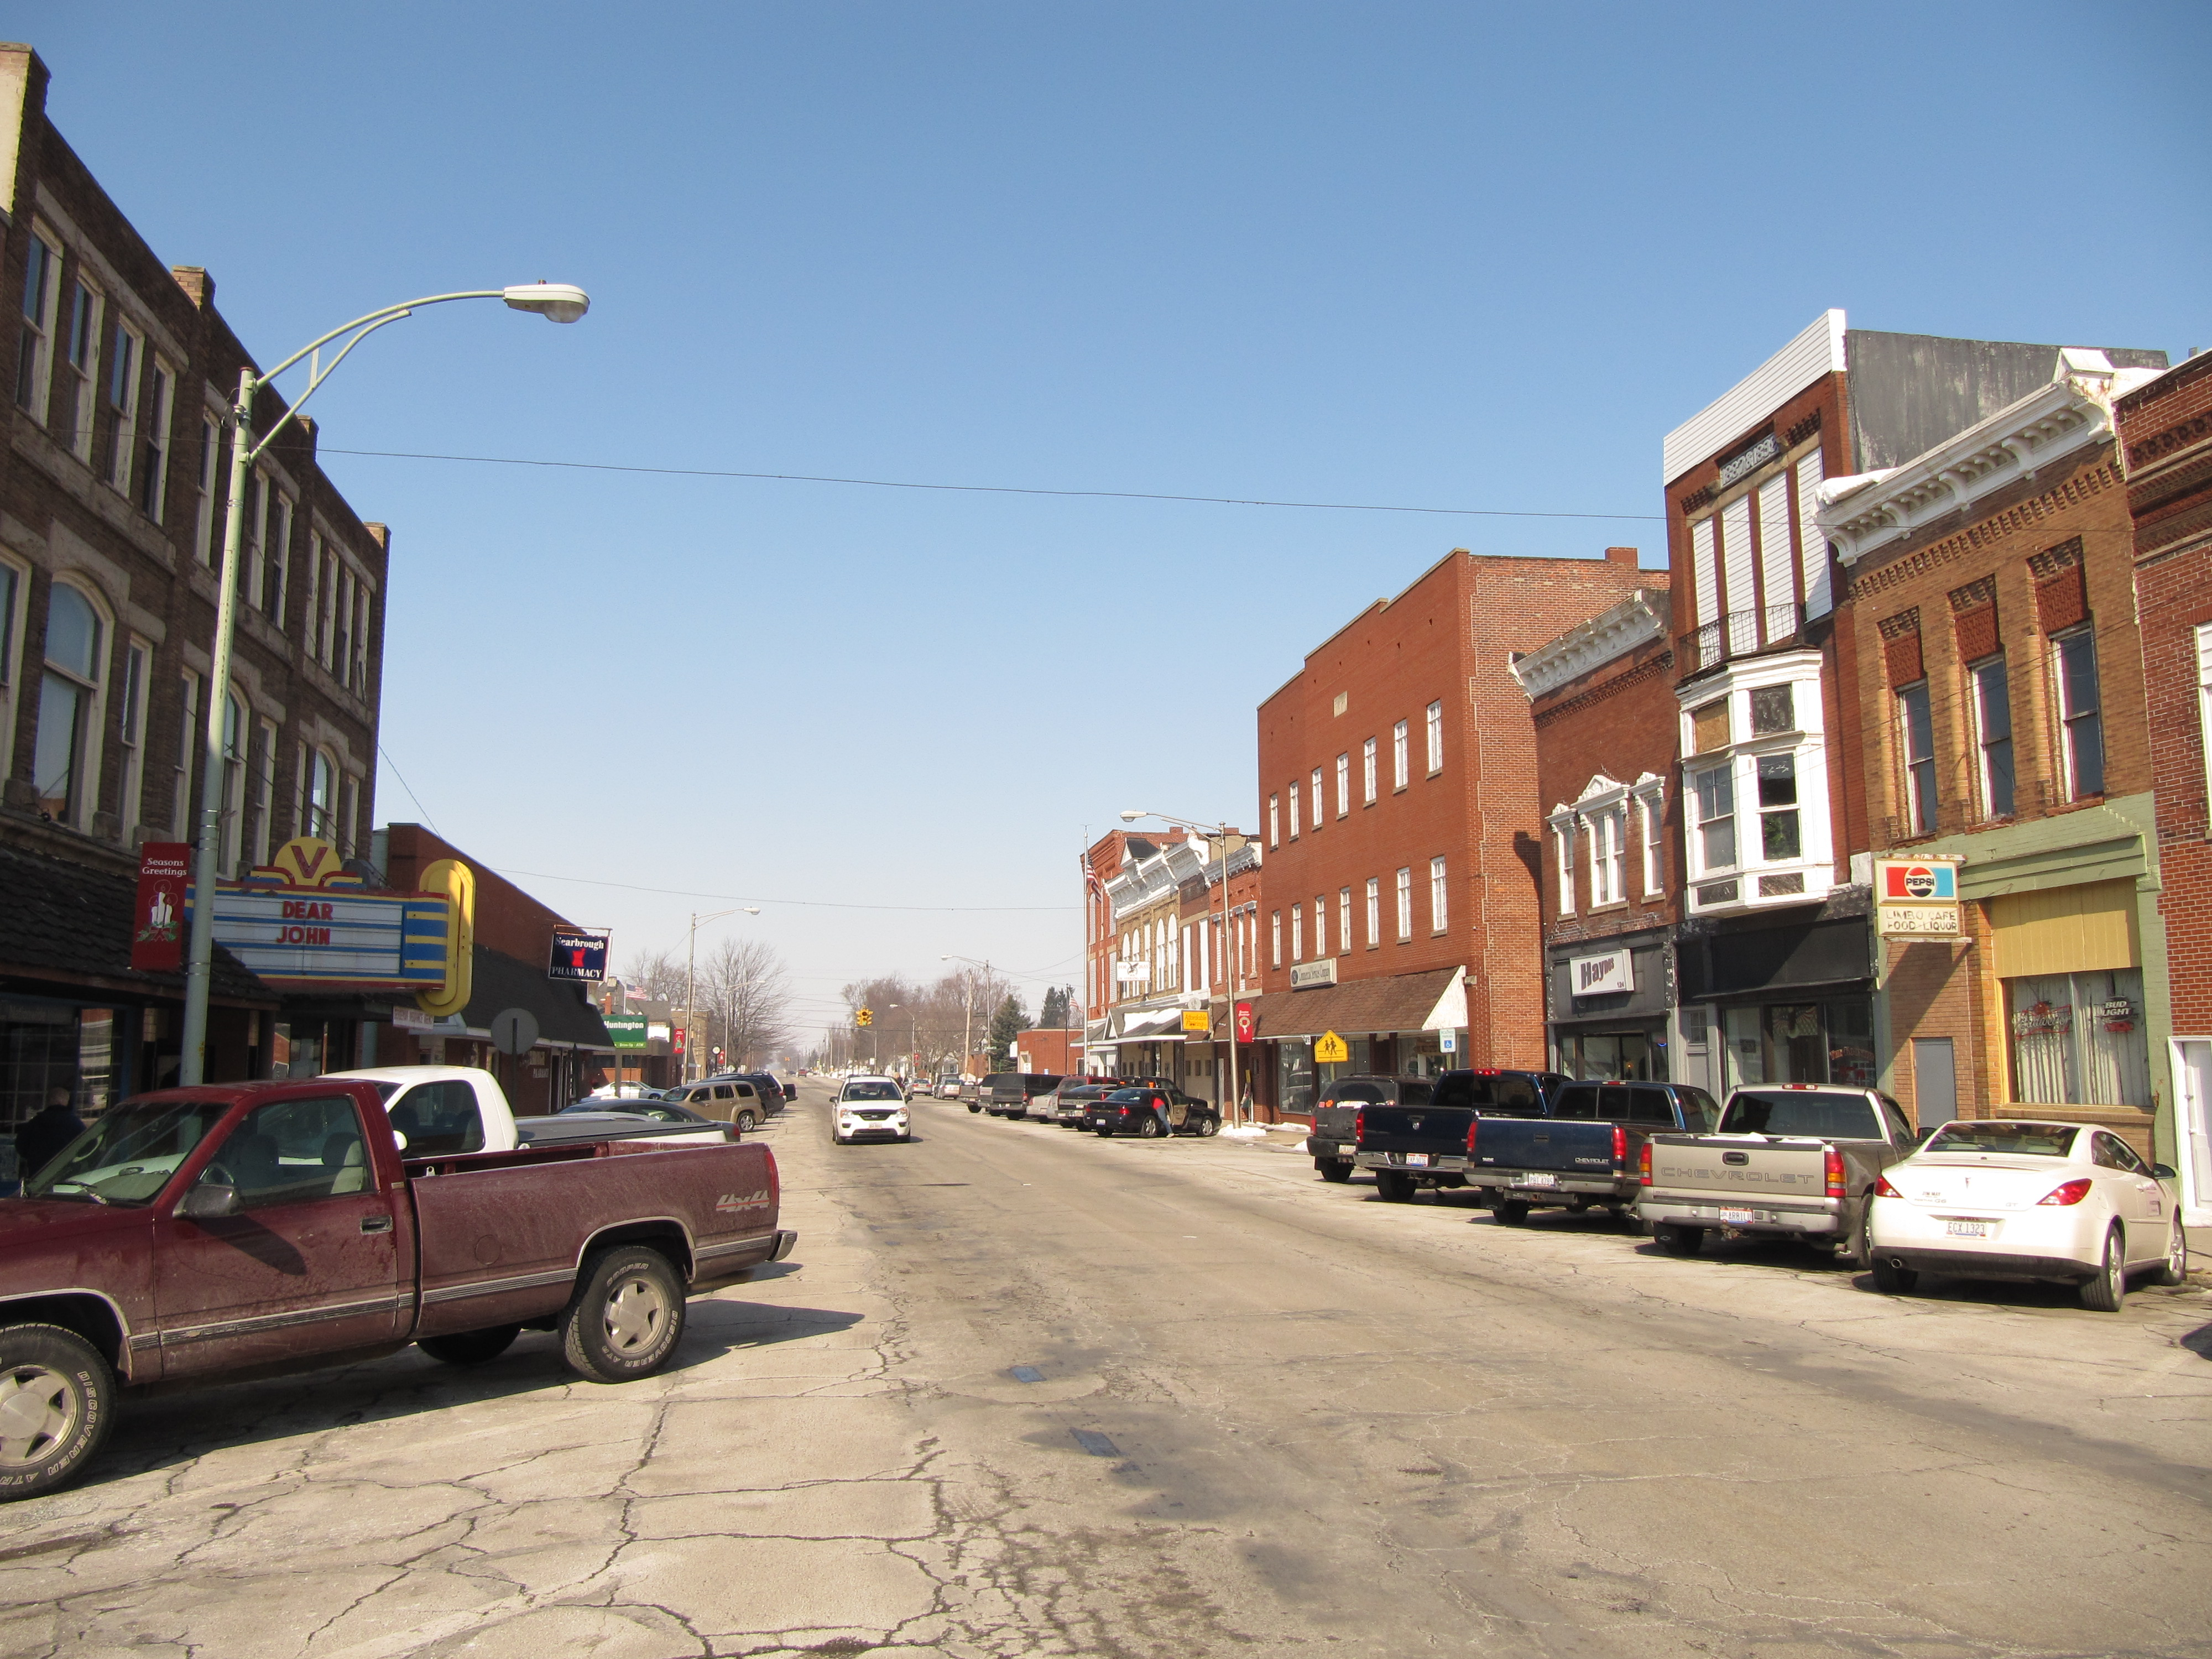 Fostoria (OH) United States  city photos : Description North Baltimore, Ohio as viewed from Main Street 026866 ...